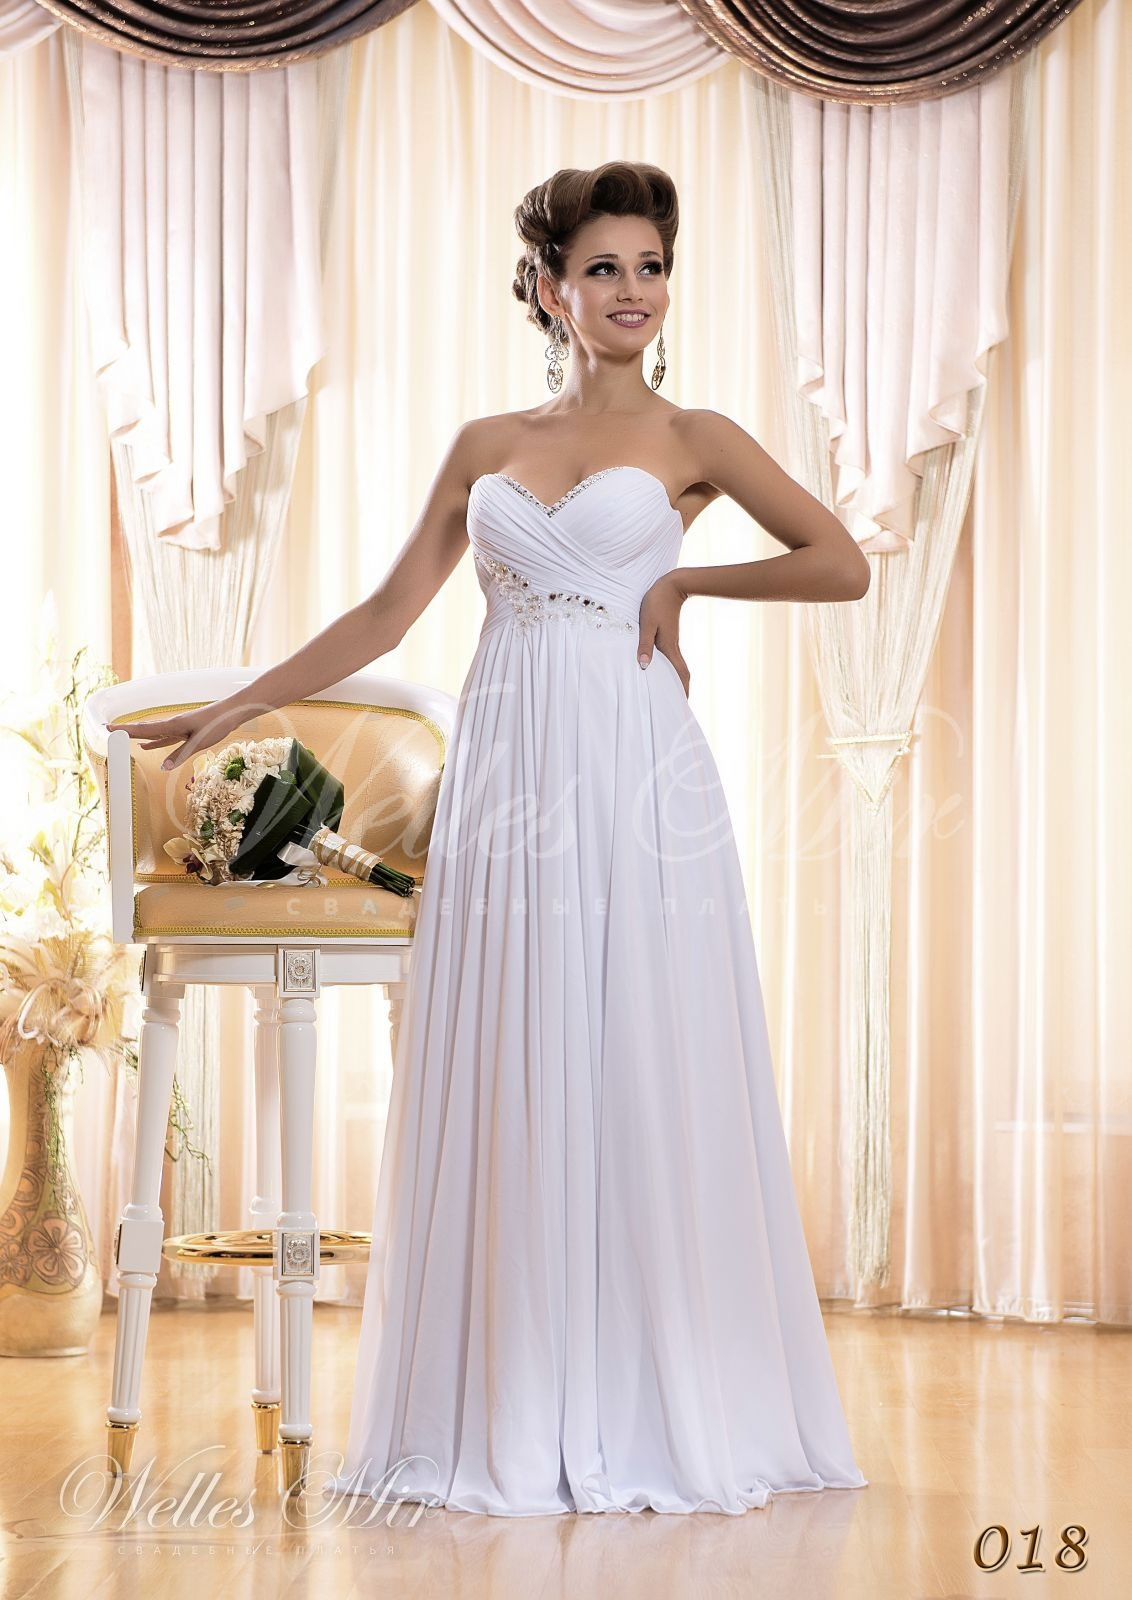 Wedding dresses 018